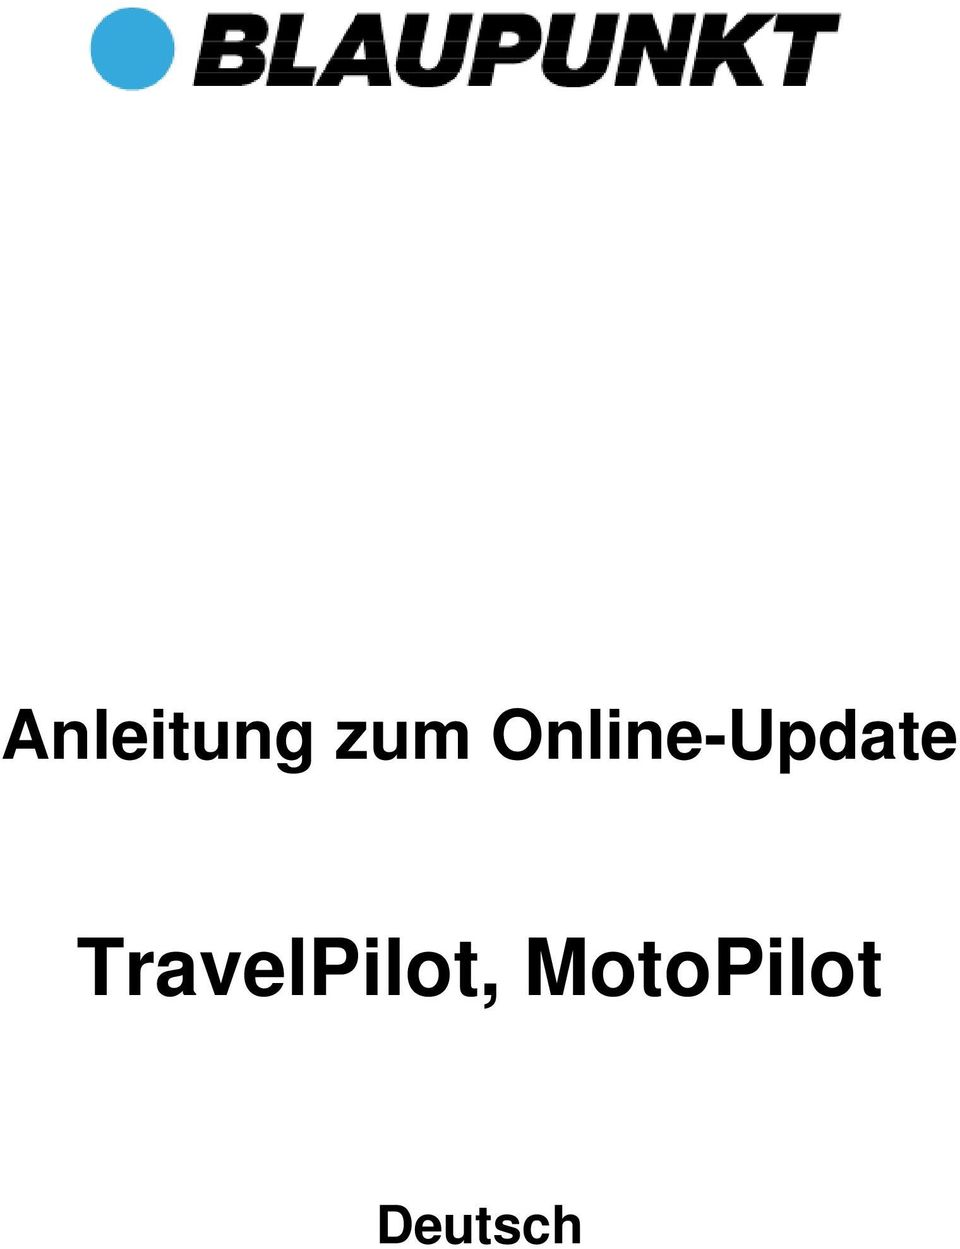 TravelPilot,